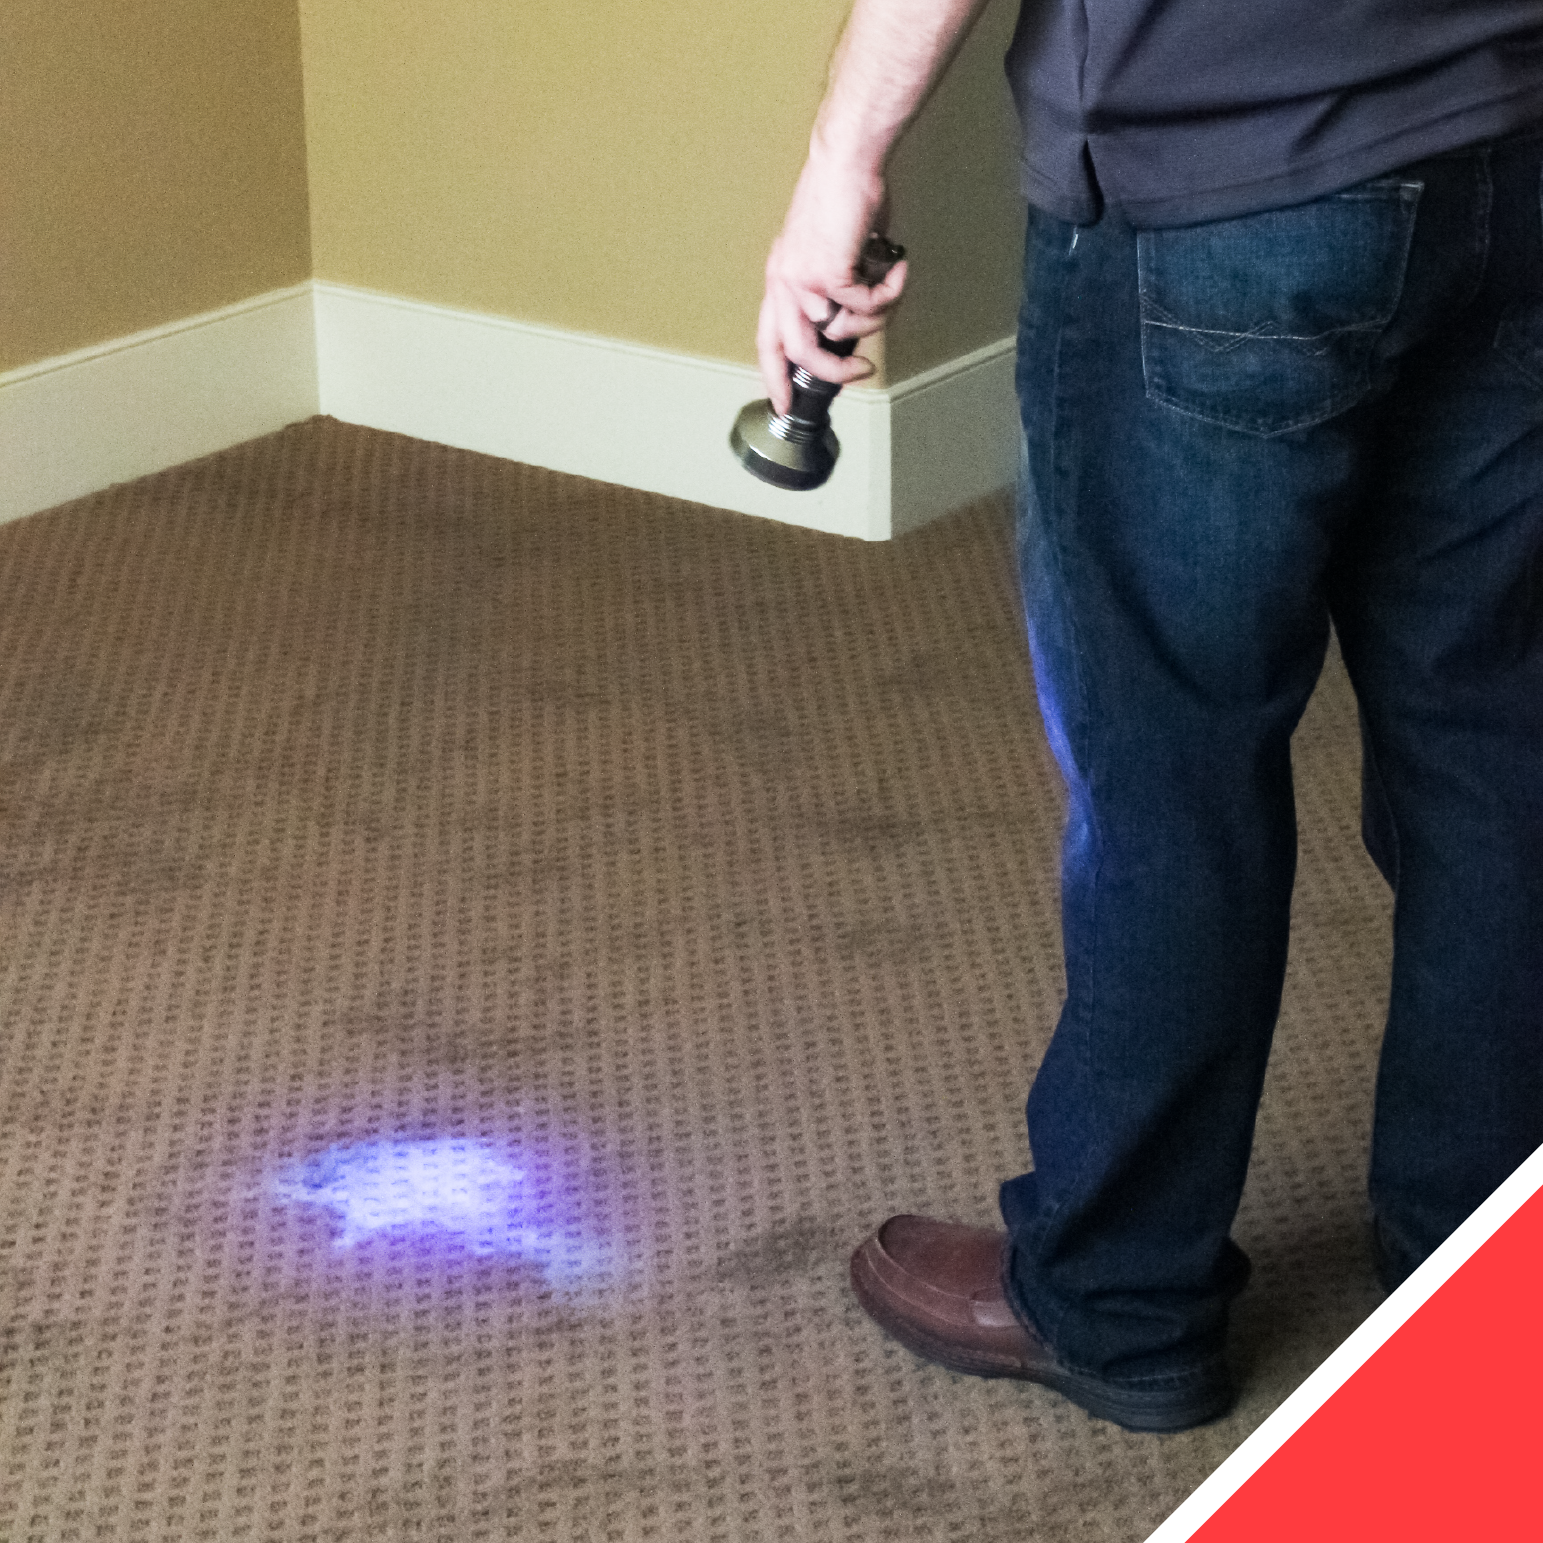 The UV Light helps us identify biological stains like urine, vomit, feces, and blood.